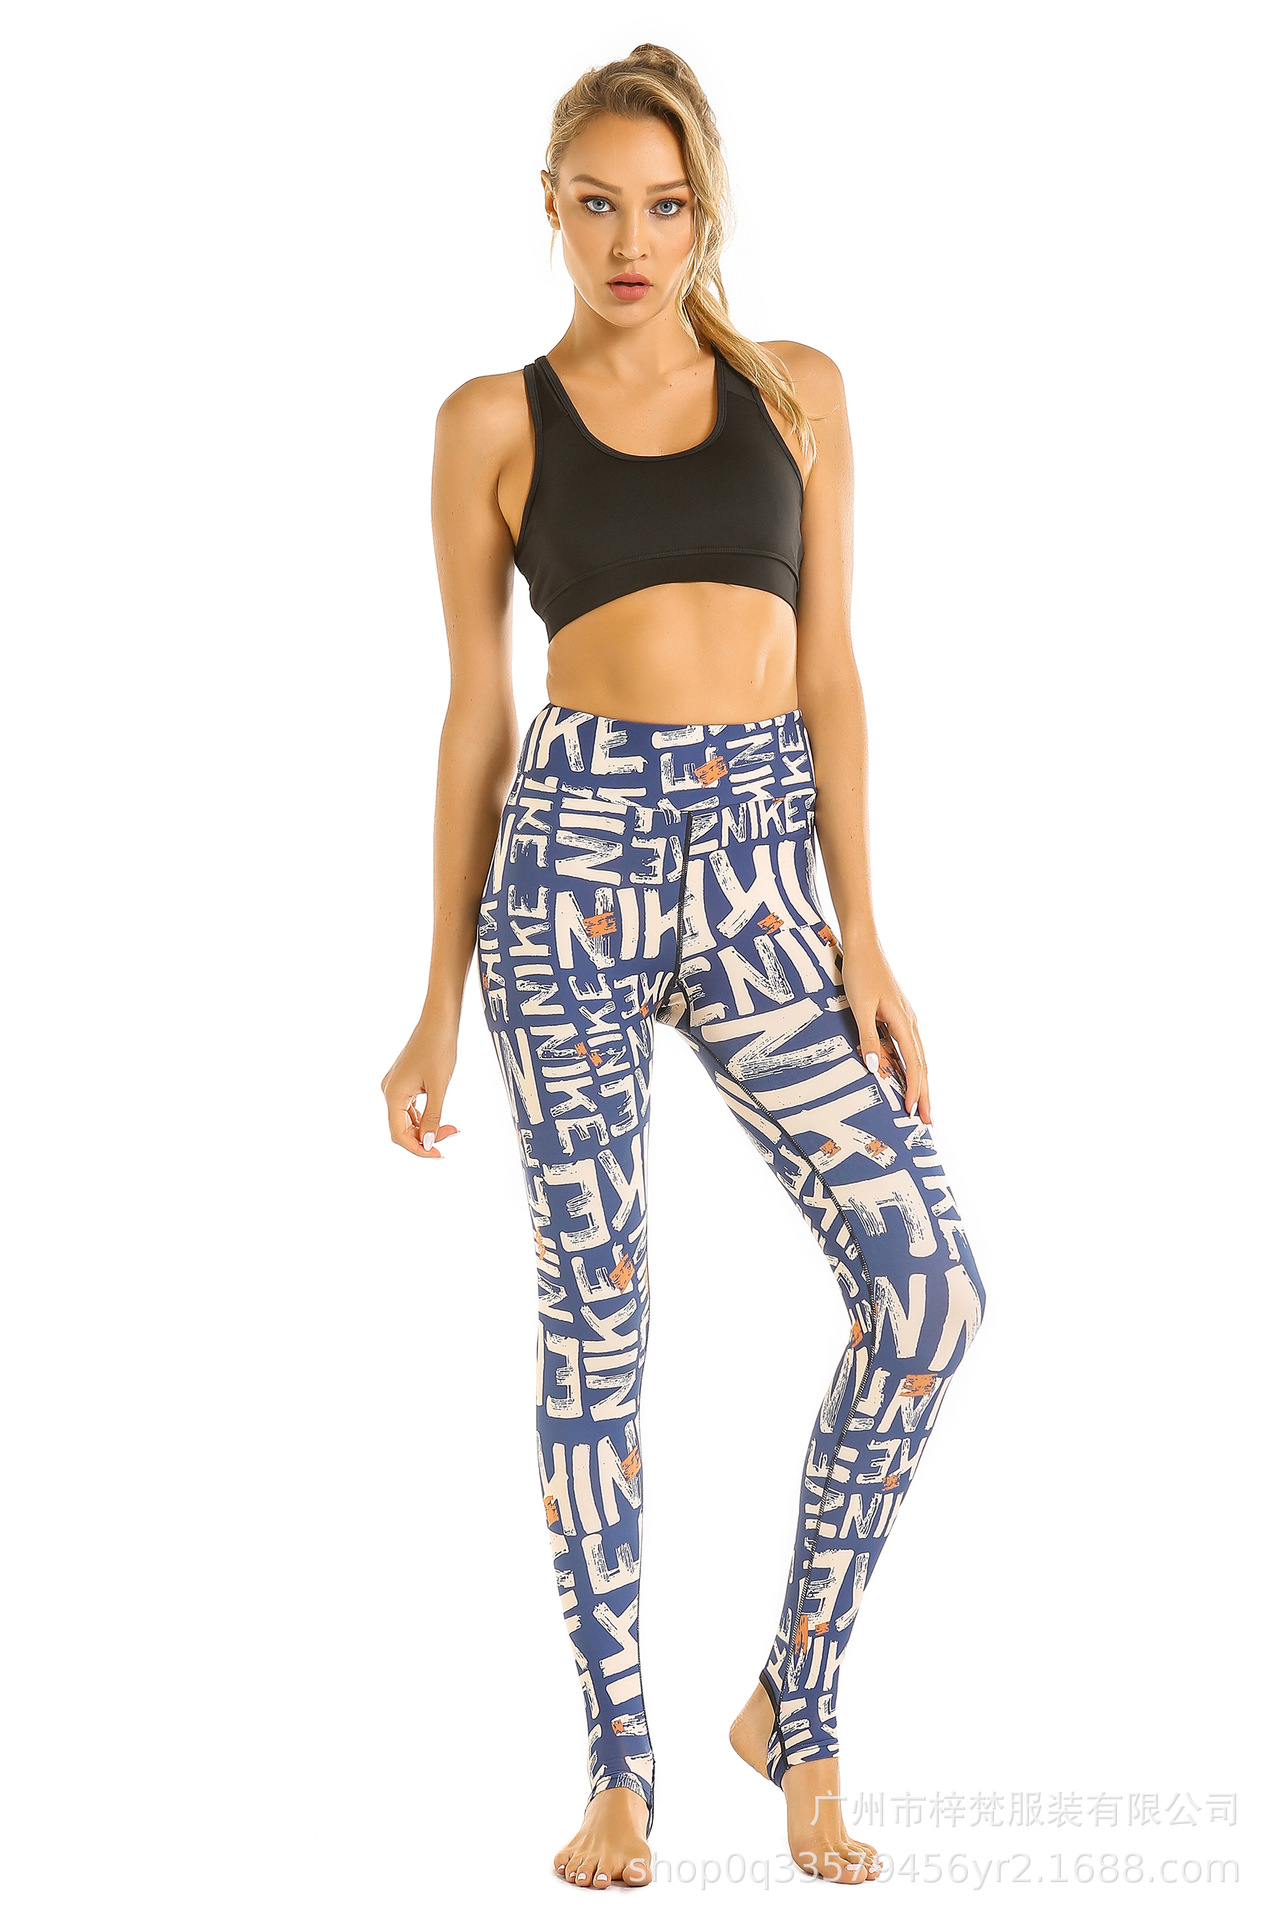 2019 Hot Selling Spring And Summer New Style Yoga Leggings Women's High-waisted Belly Holding Buttock Lifting Stepping Printed F